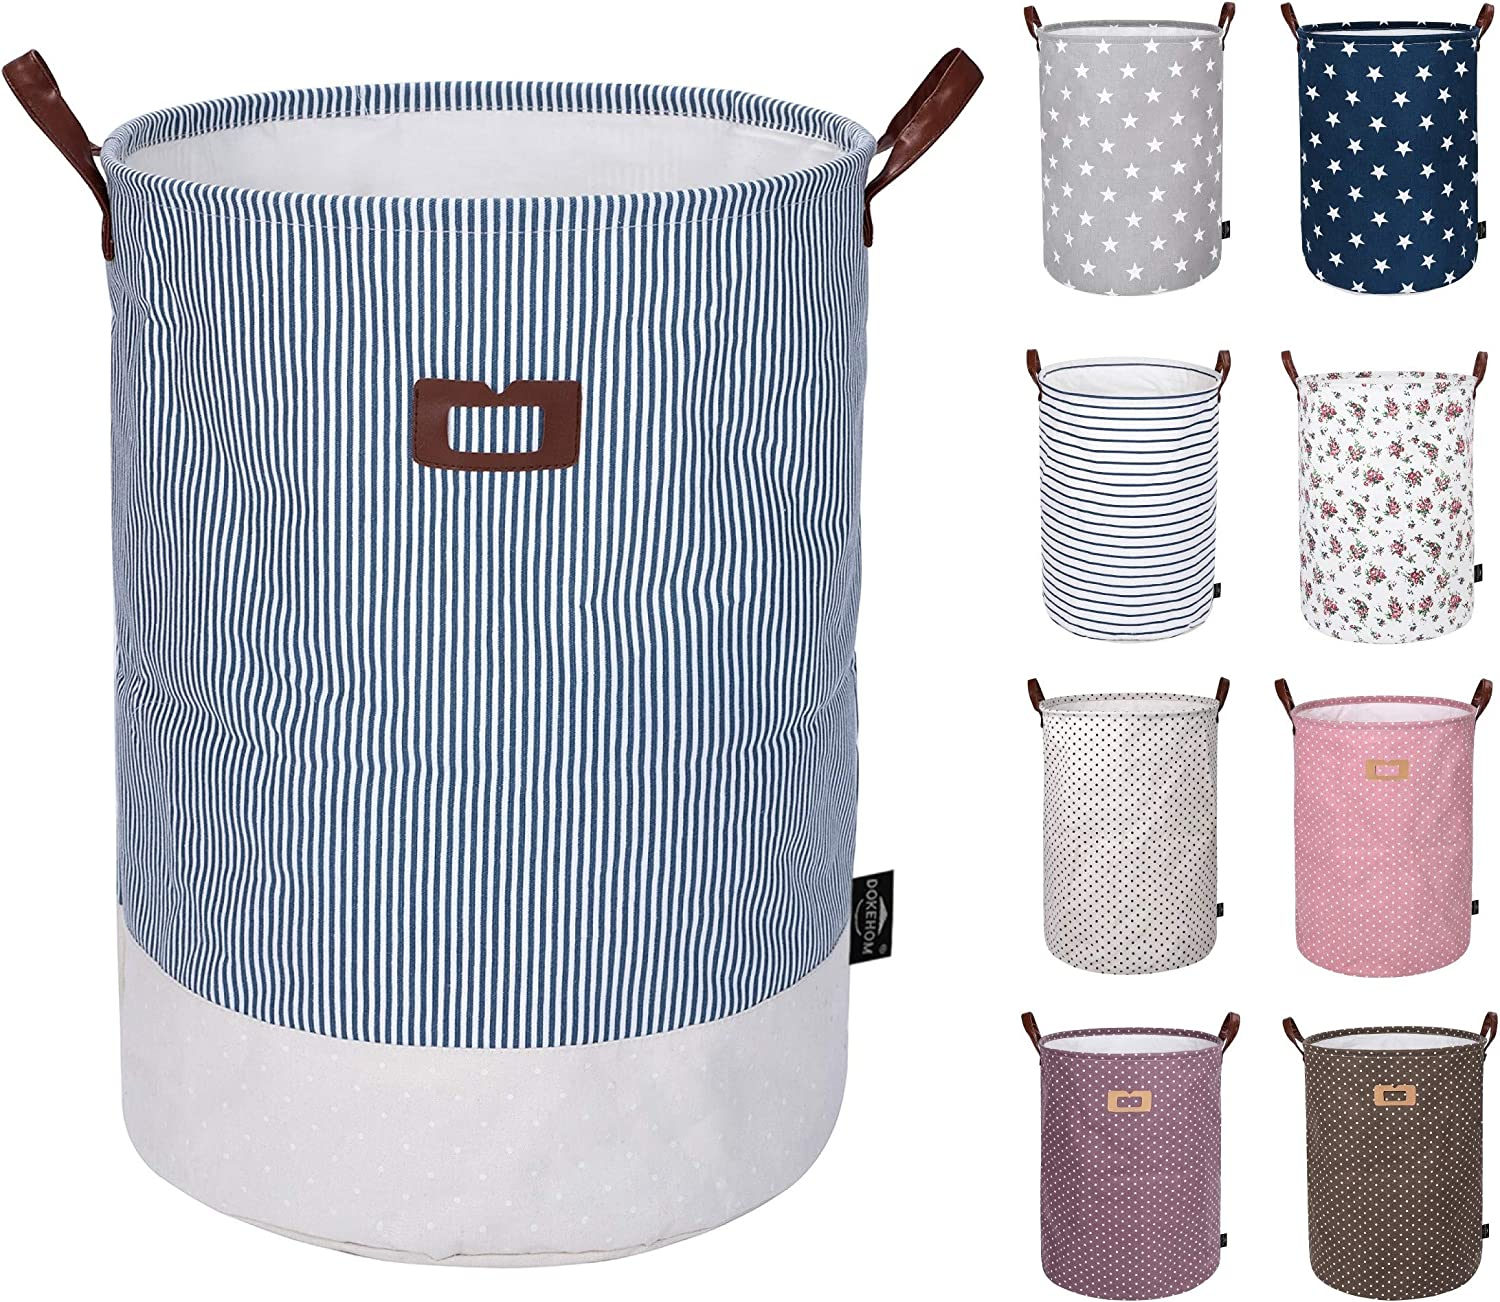 DOKEHOM 22-Inches Thickened X-Large Laundry Basket (9 Colors)- with Durable Leather Handle, Drawstring Waterproof Round Cotton Linen Collapsible Storage Basket (Navy Blue, XL)